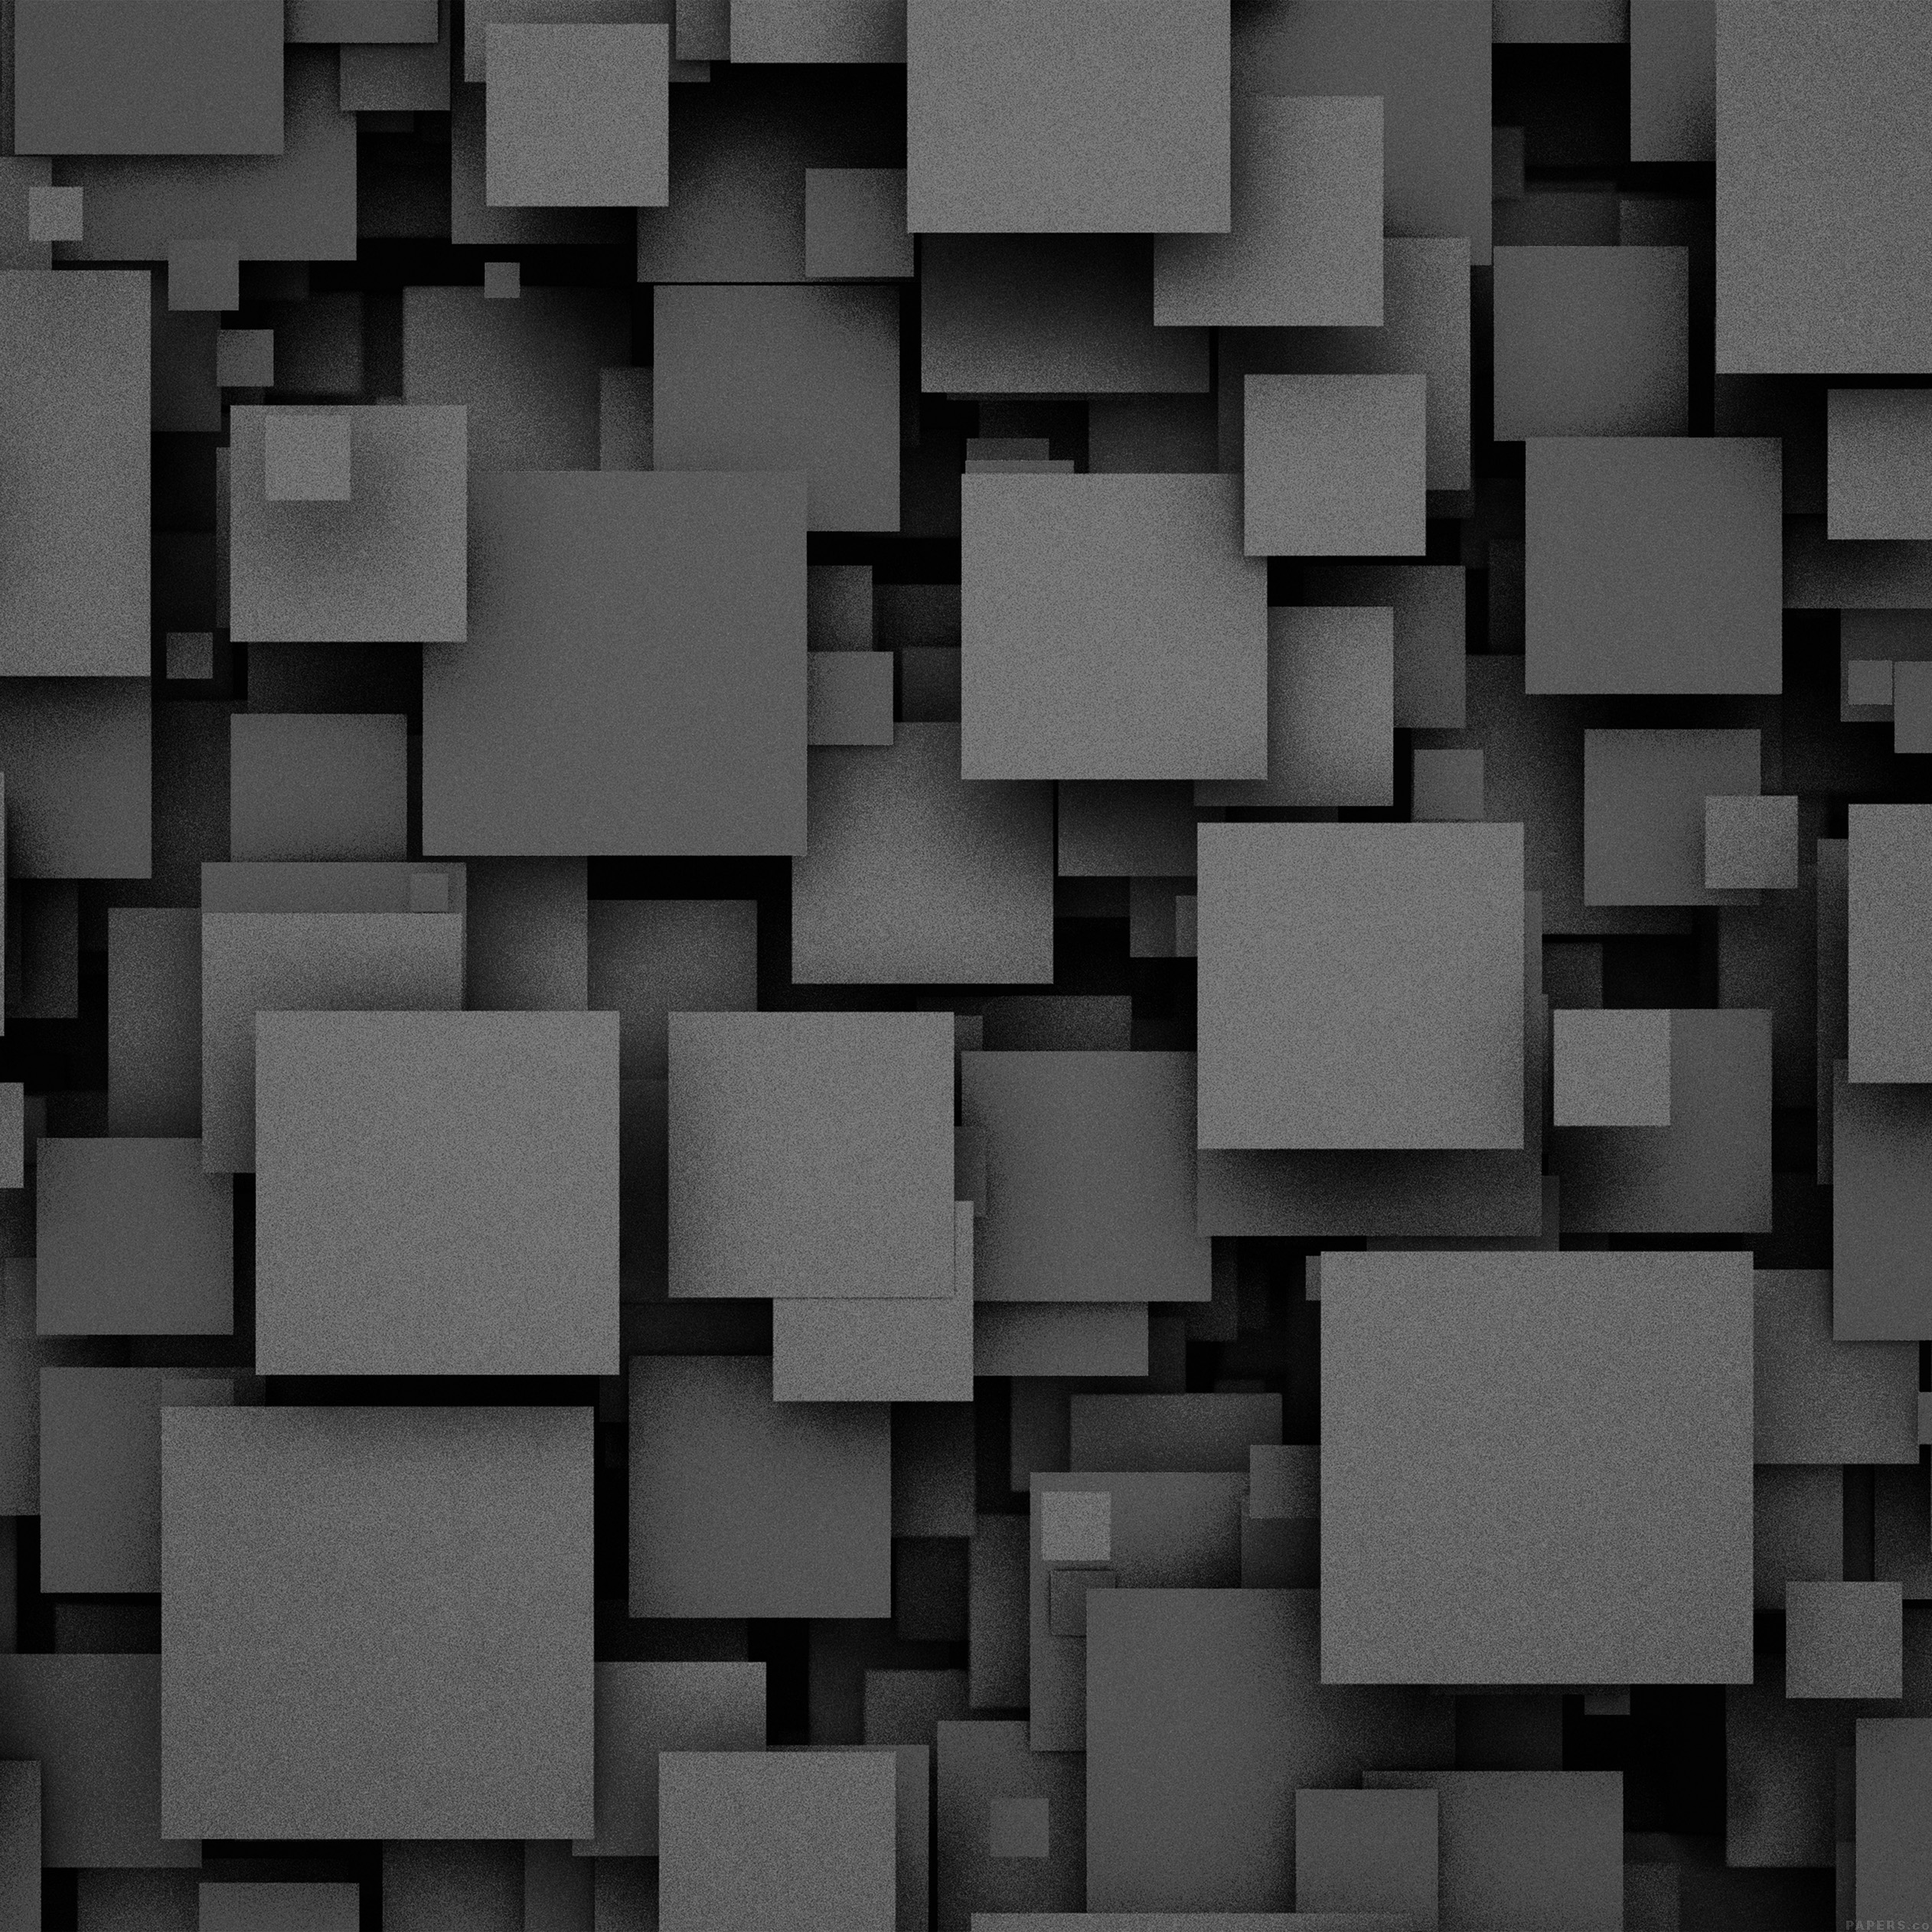 Black Screen Wallpaper Textured Pattern Wallpapers For Iphone And Ipad